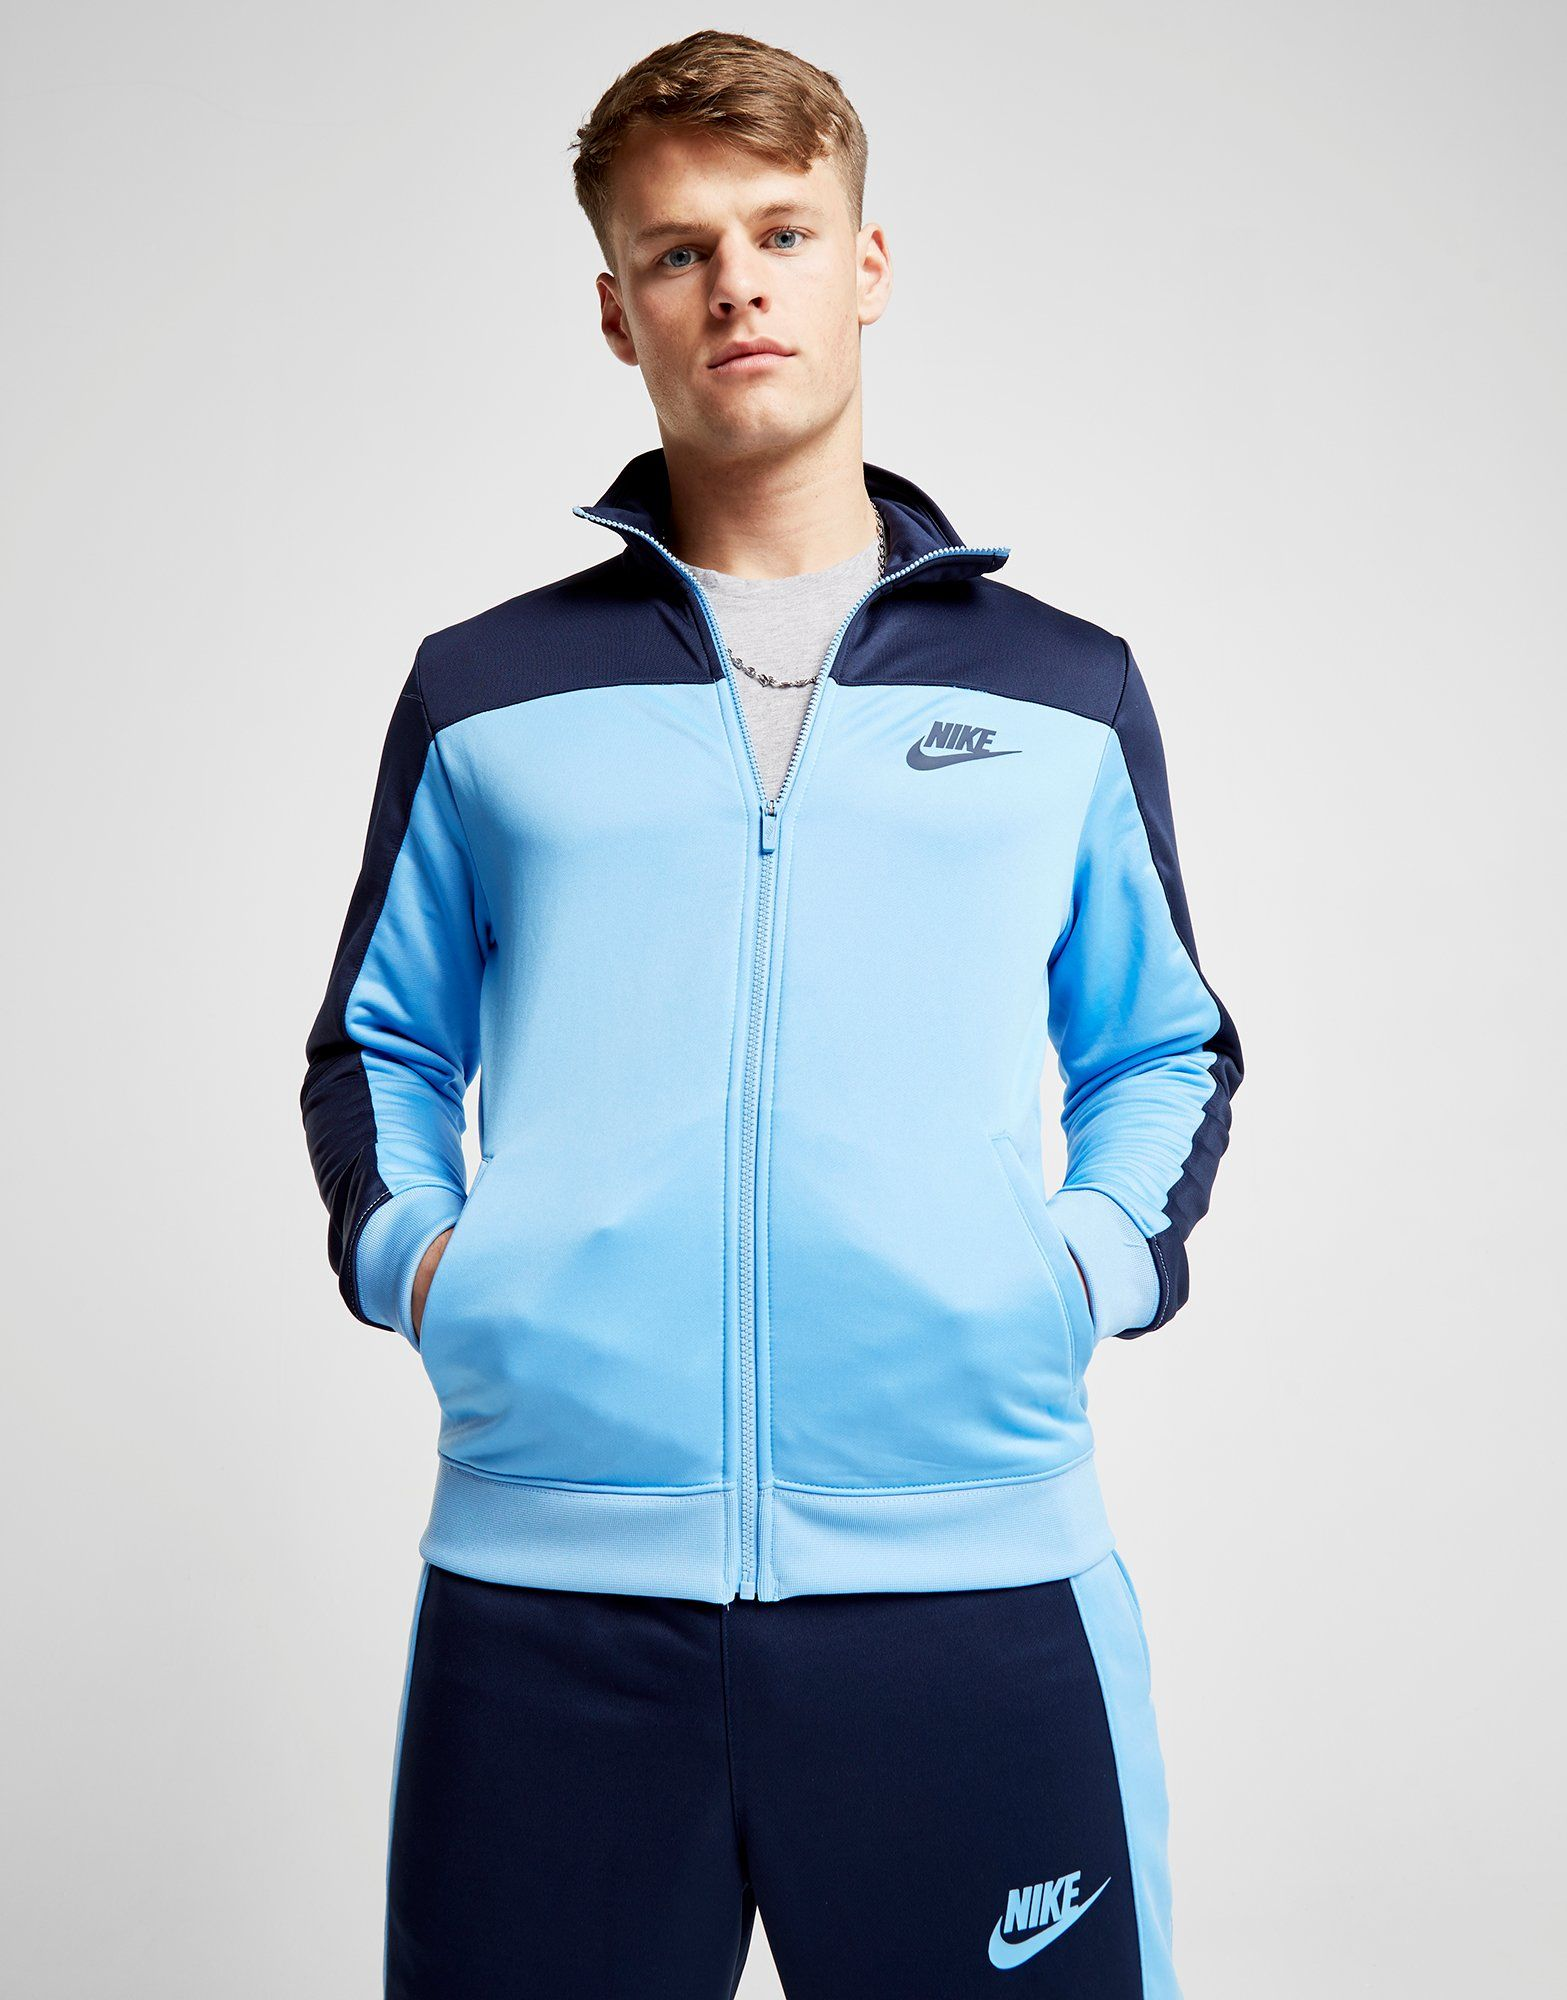 Blau Poly Top Colourblock Poly Track Poly Nike Track Top Season Season Blau Colourblock Nike Colourblock Season Nike wqAaXpznx